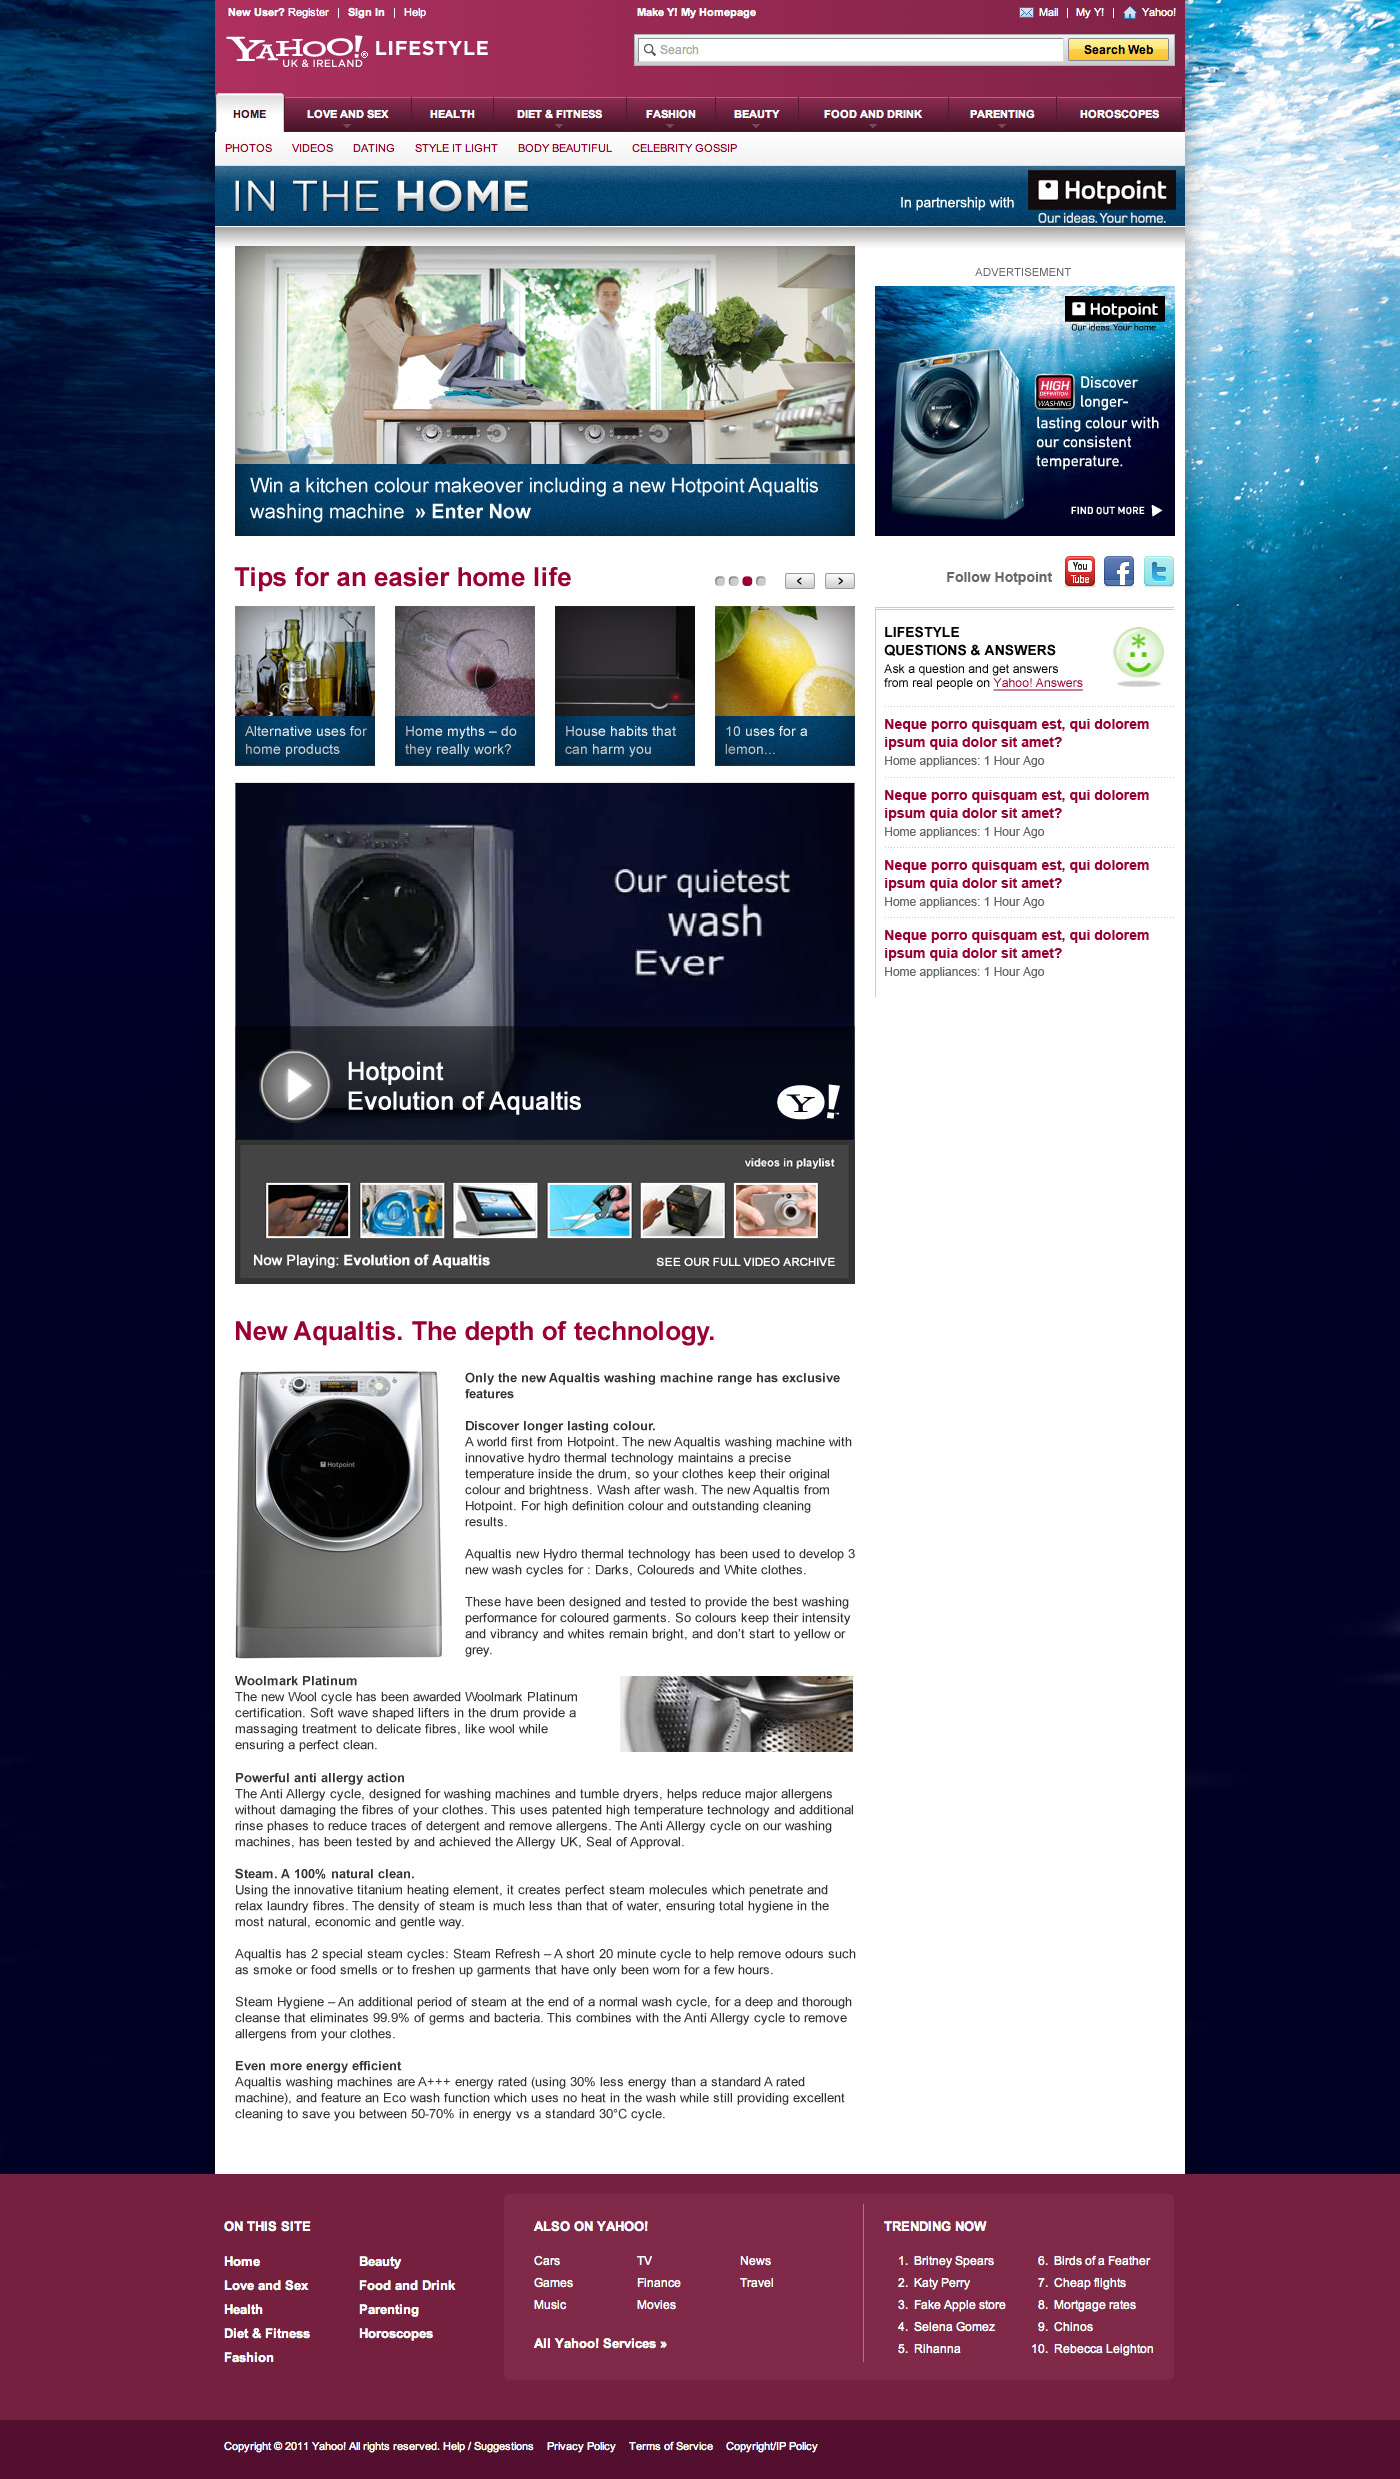 Hotpoint - In the home - website design and development in Farnborough, Hampshire